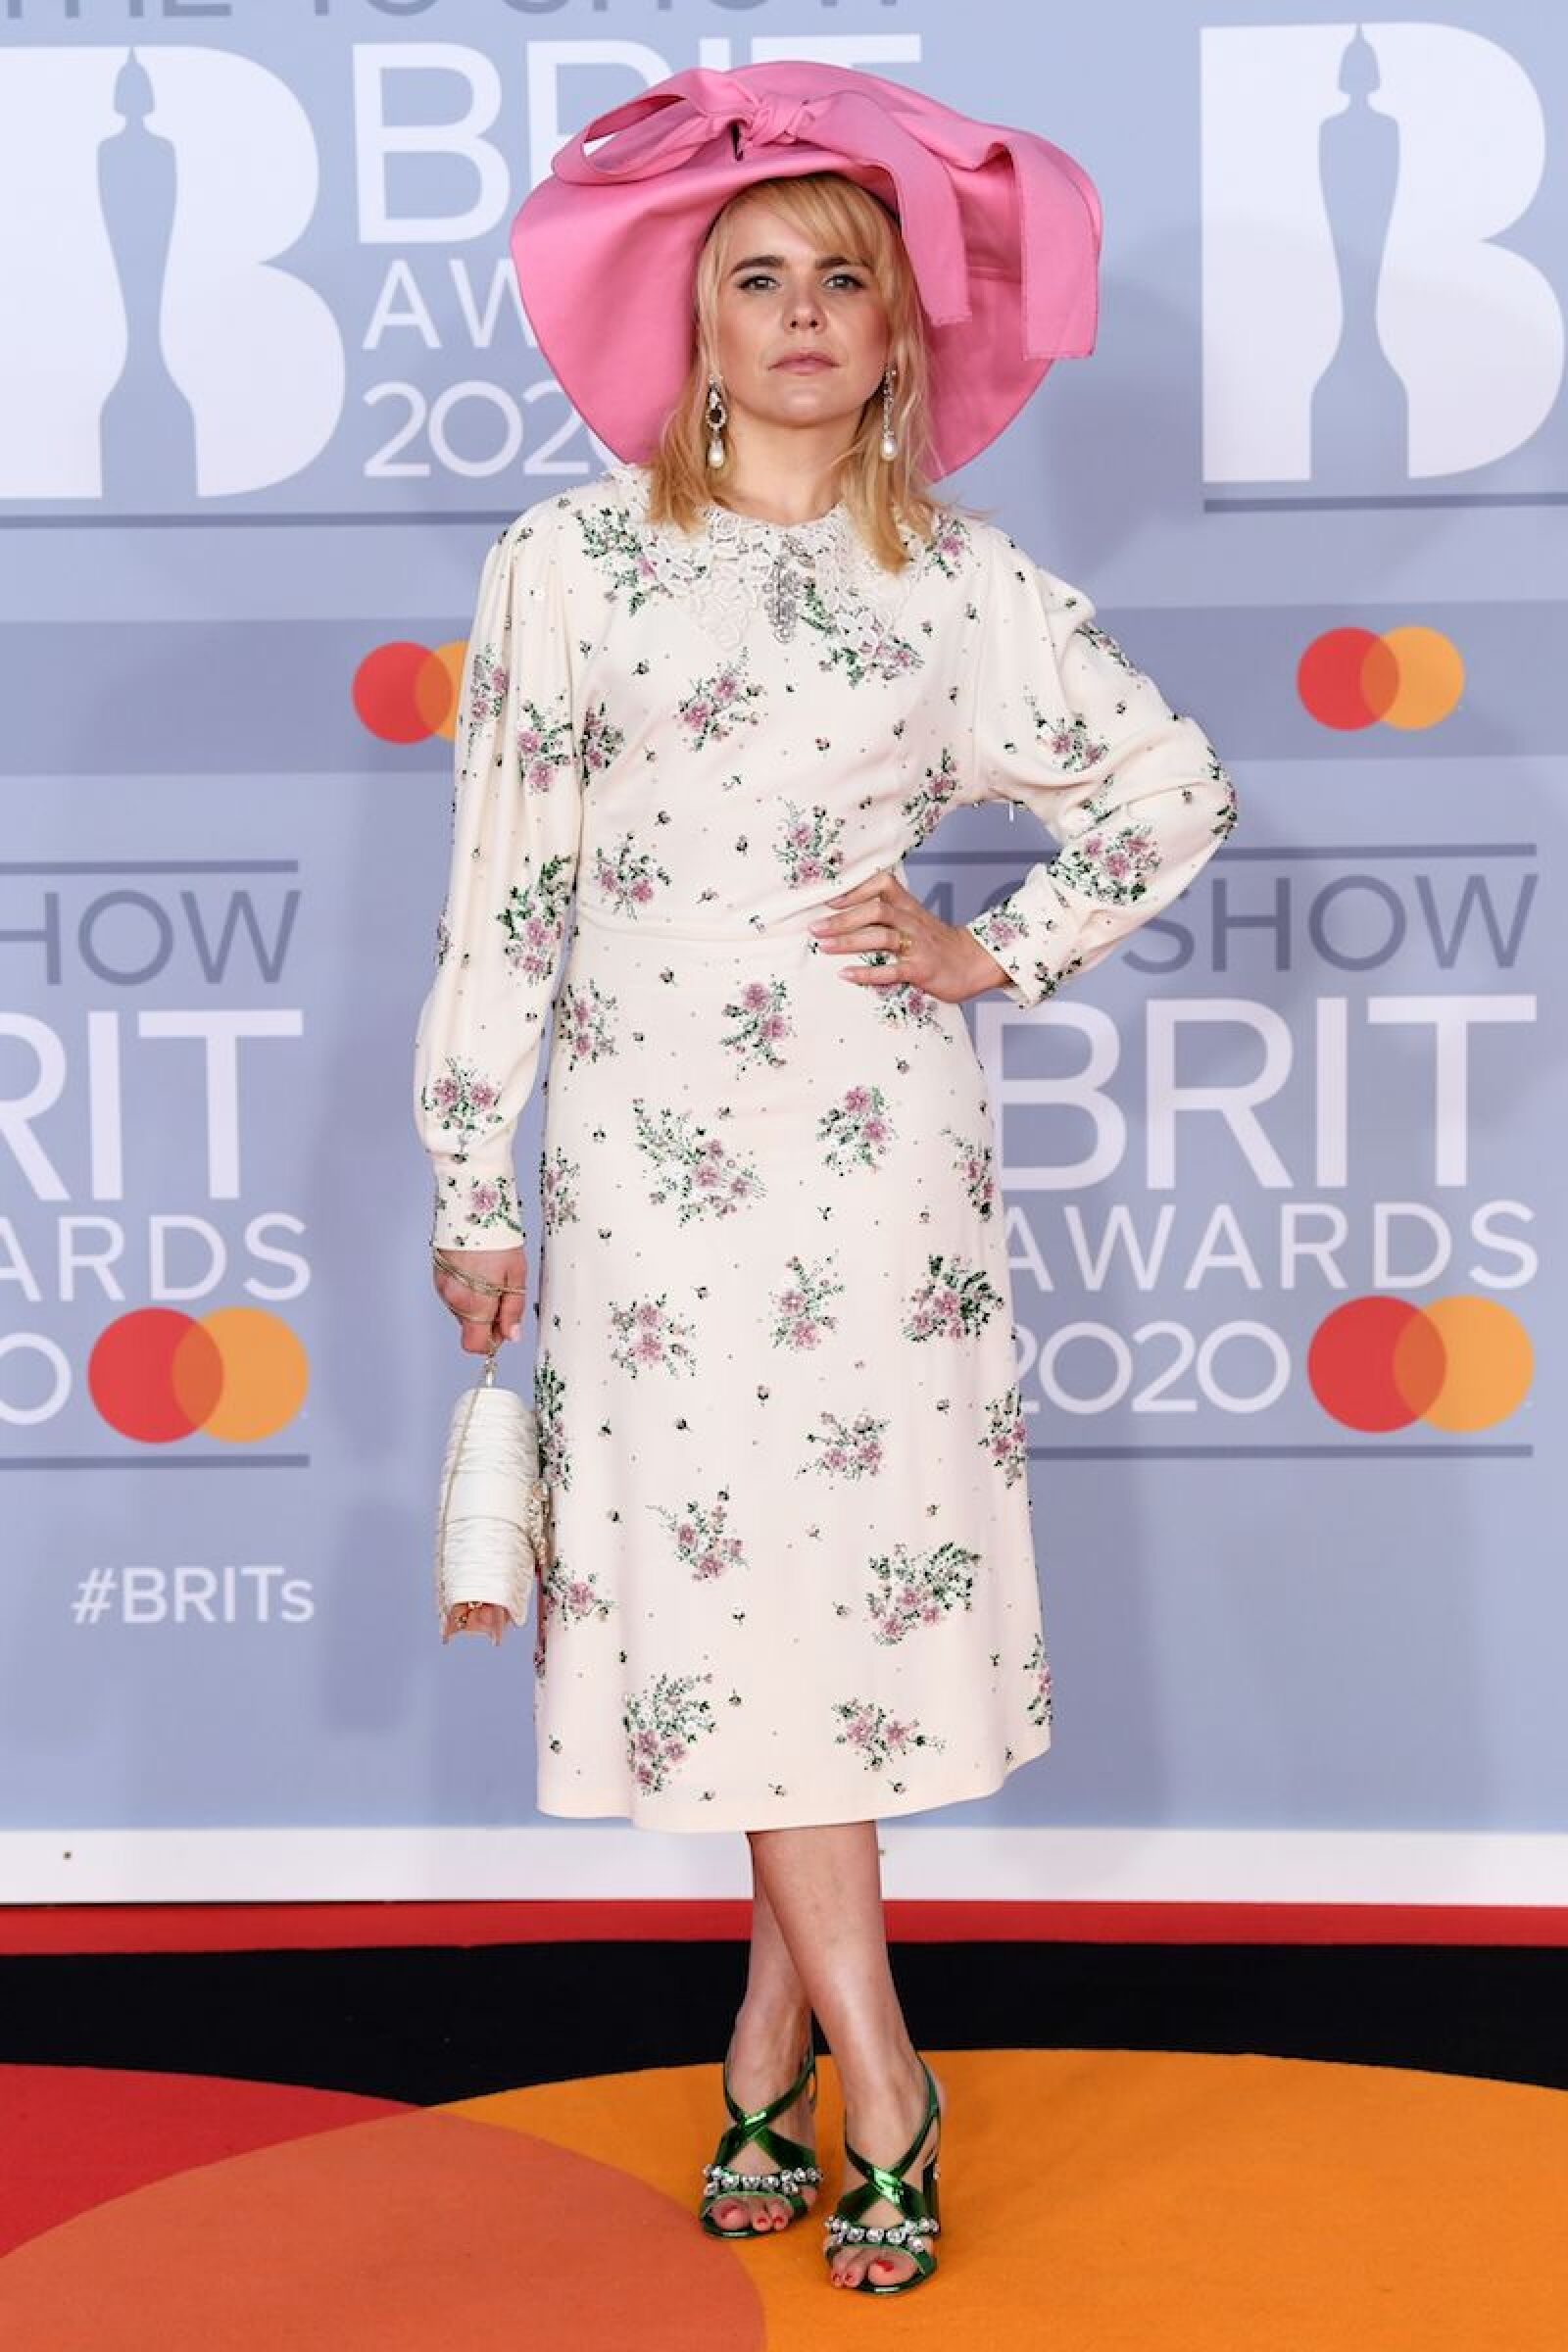 40th Brit Awards, Arrivals, Fashion Highlights, The O2 Arena, London, UK - 18 Feb 2020